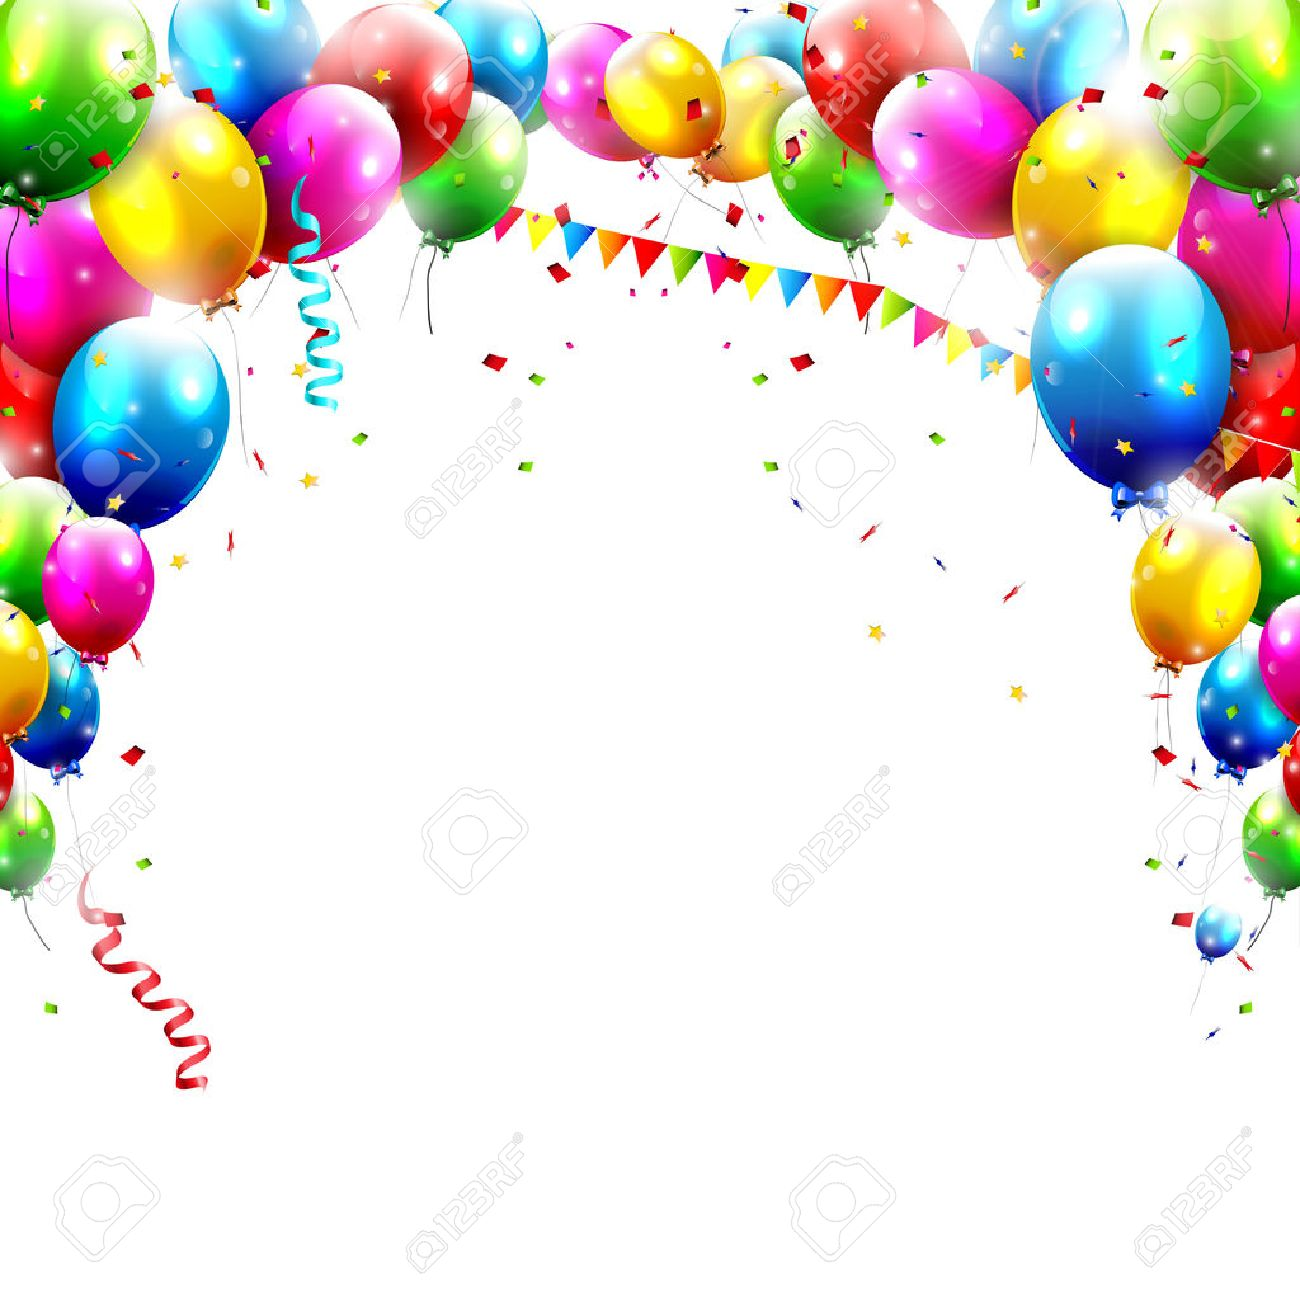 Coloful birthday balloons isolated on white background - 25121776